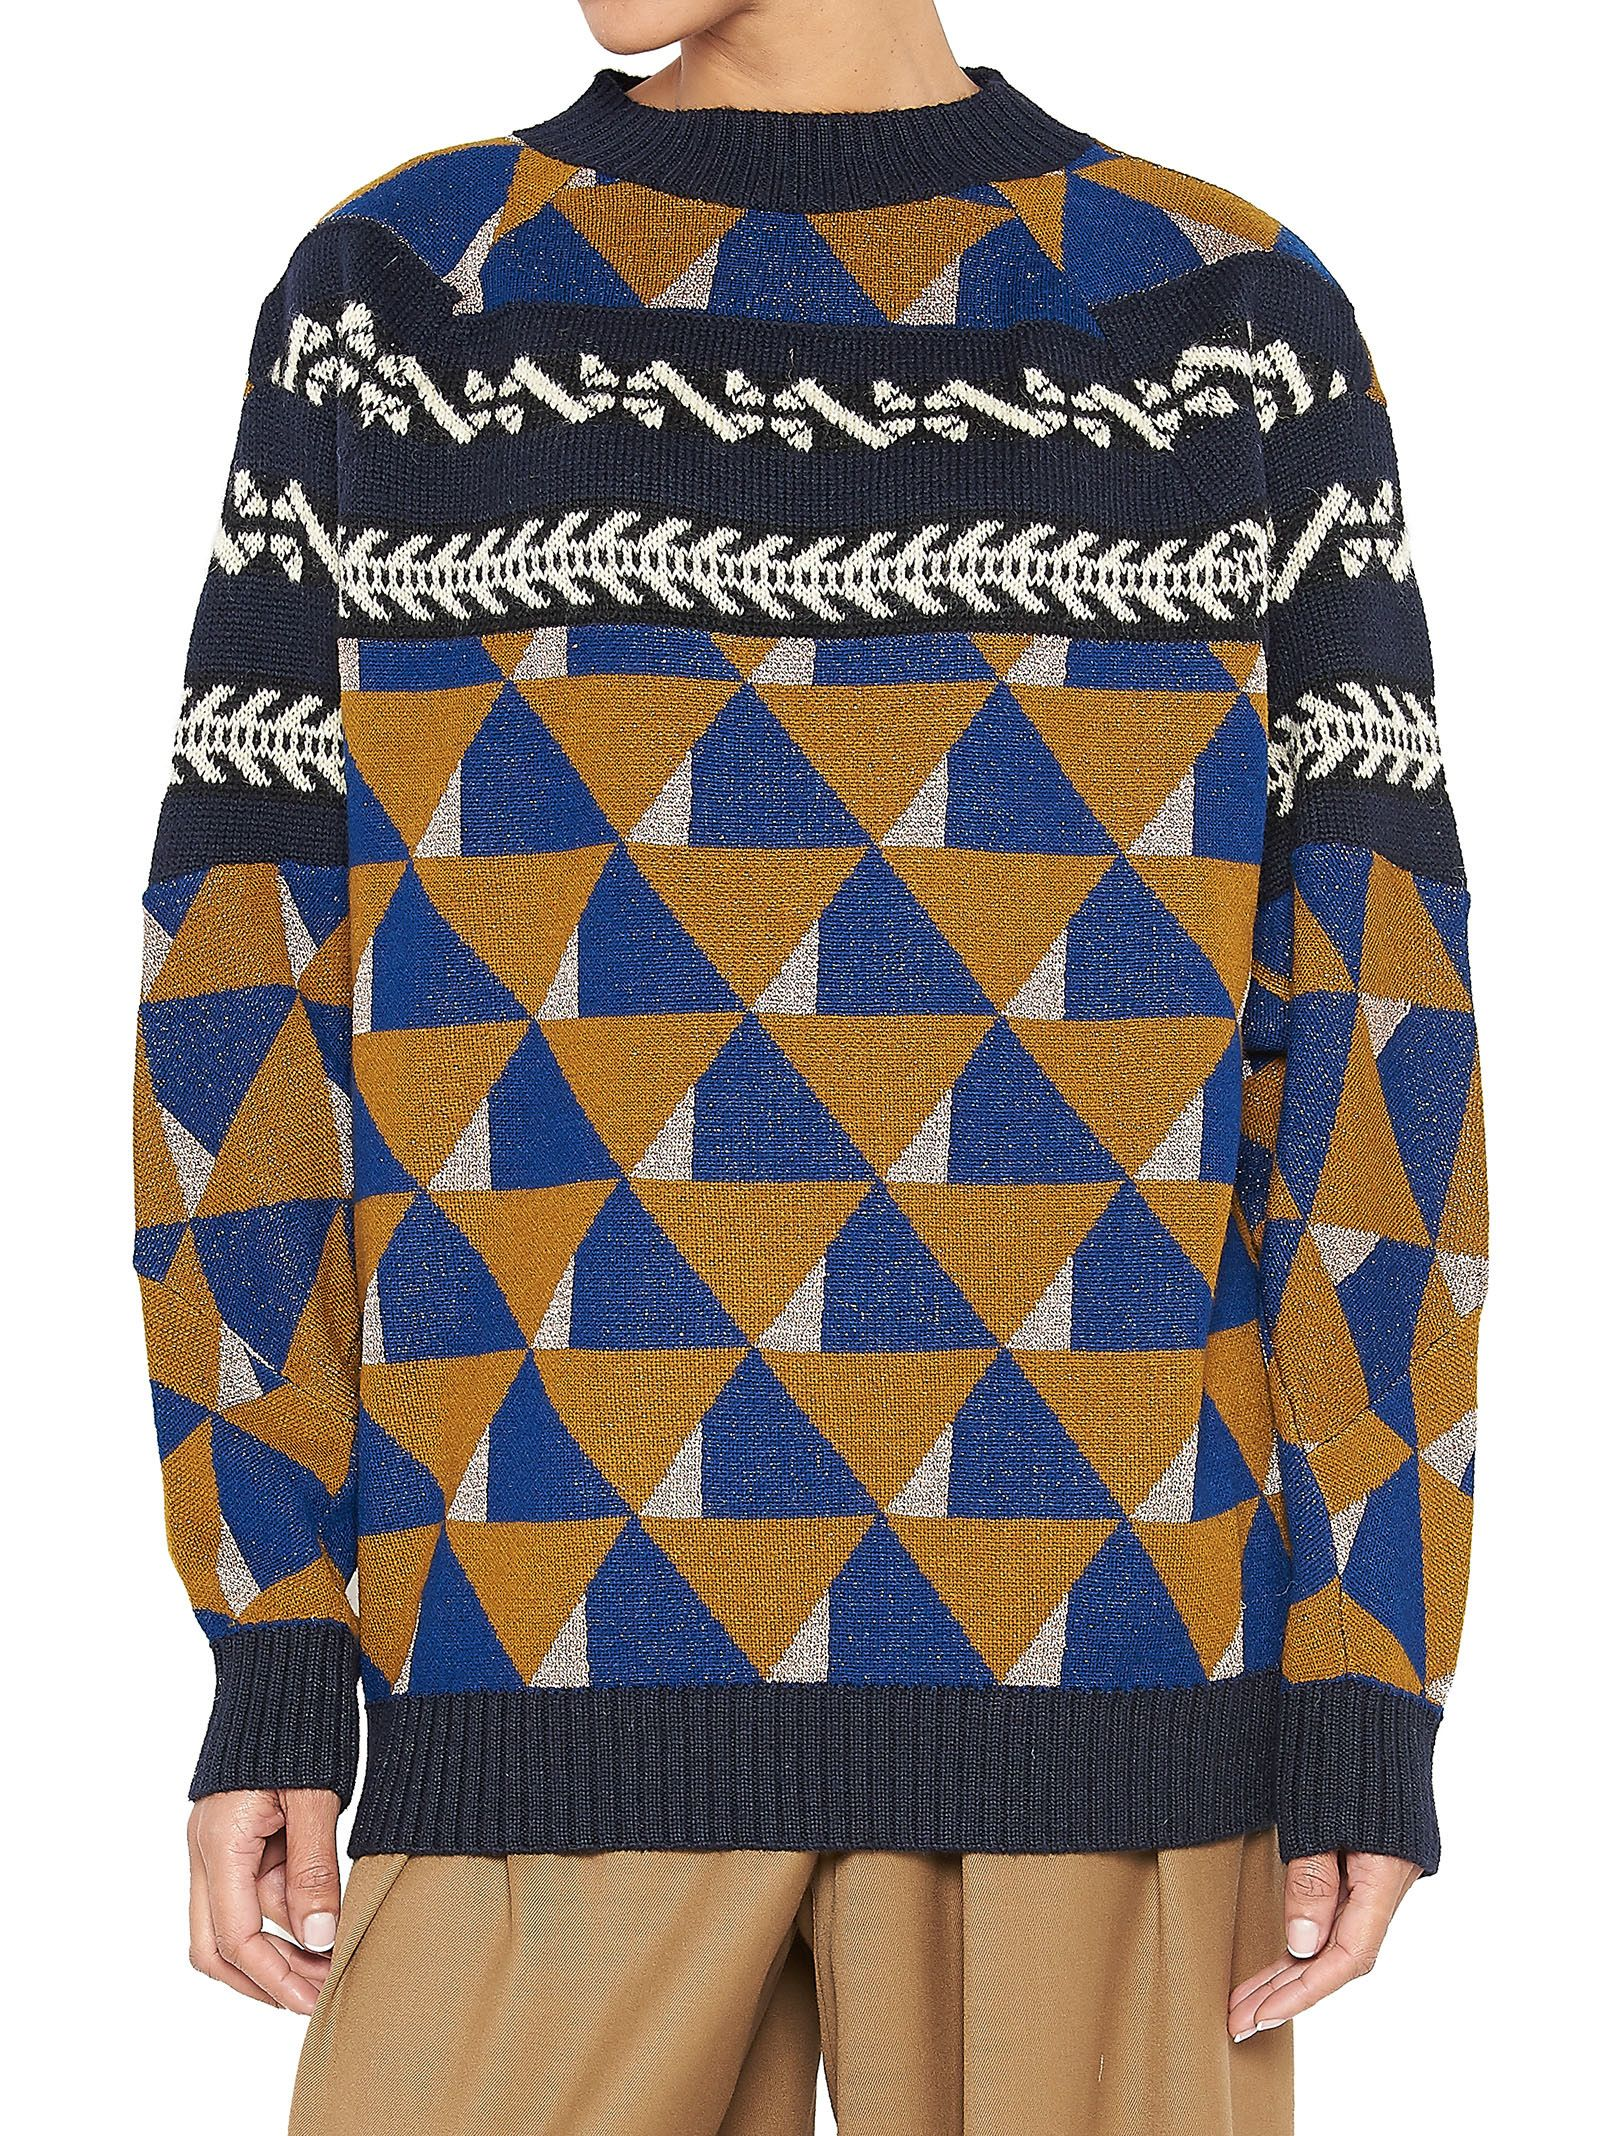 Dries Van Noten Sweater